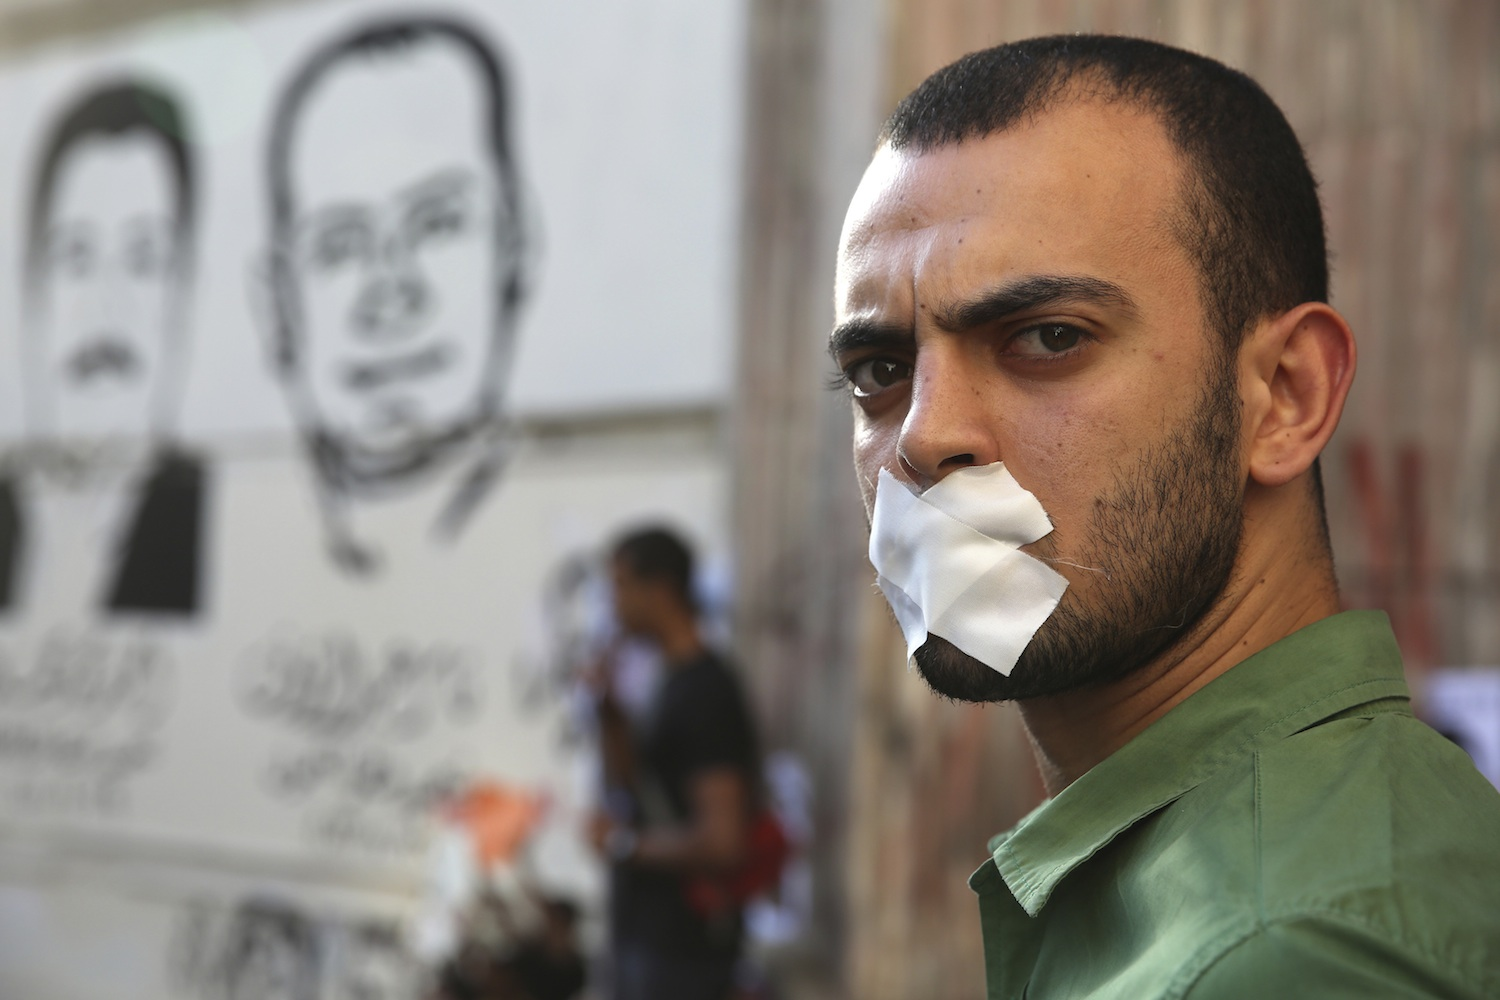 A protester rallies in support of Al Jazeera journalists Abdullah al-Shami and Mohammed Sultan, who were detained by Egyptian authorities, in front of the Press Syndicate in Cairo. June 1, 2014. (Photo: Reuters/Mohamed Abd El Ghany)